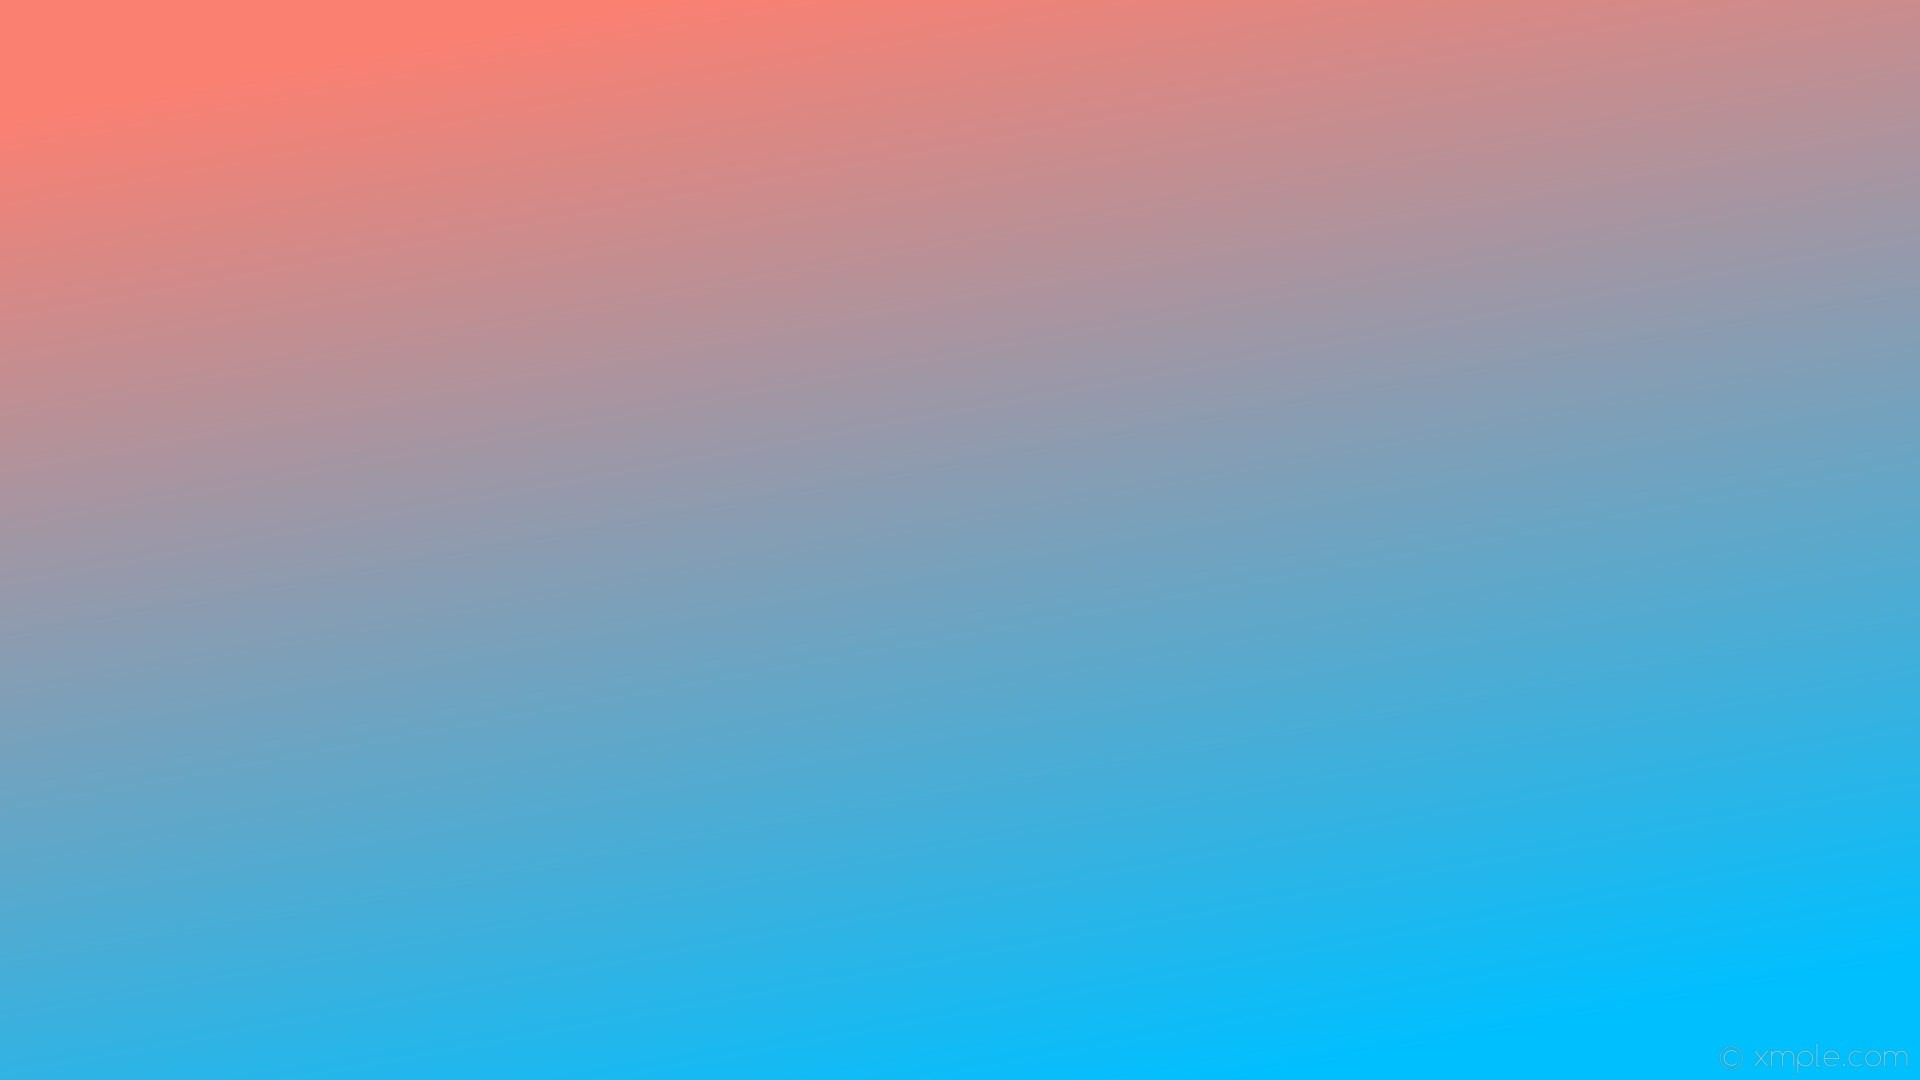 Pastel Color Wallpaper and Background